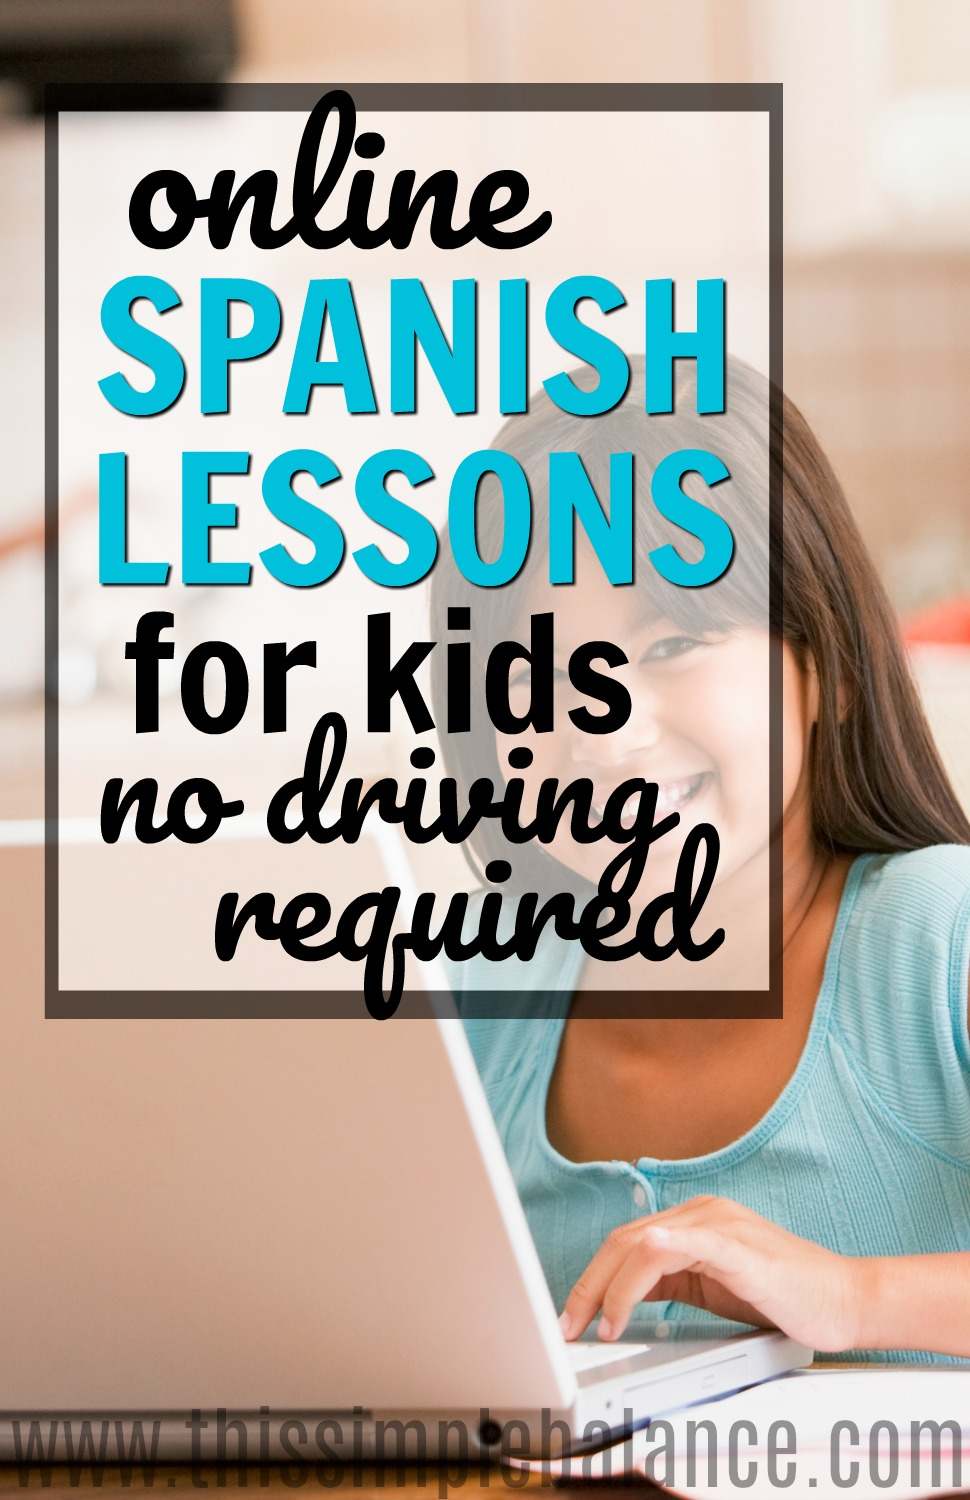 Looking for a way for your child to learn Spanish? Learning Spanish at a young age is the best way for a child to develop fluency and the accent of a native speaker. These online Spanish lessons for kids with PandaTree.com are perfect for giving your child a second language - and you don't even need to leave the house to do it!